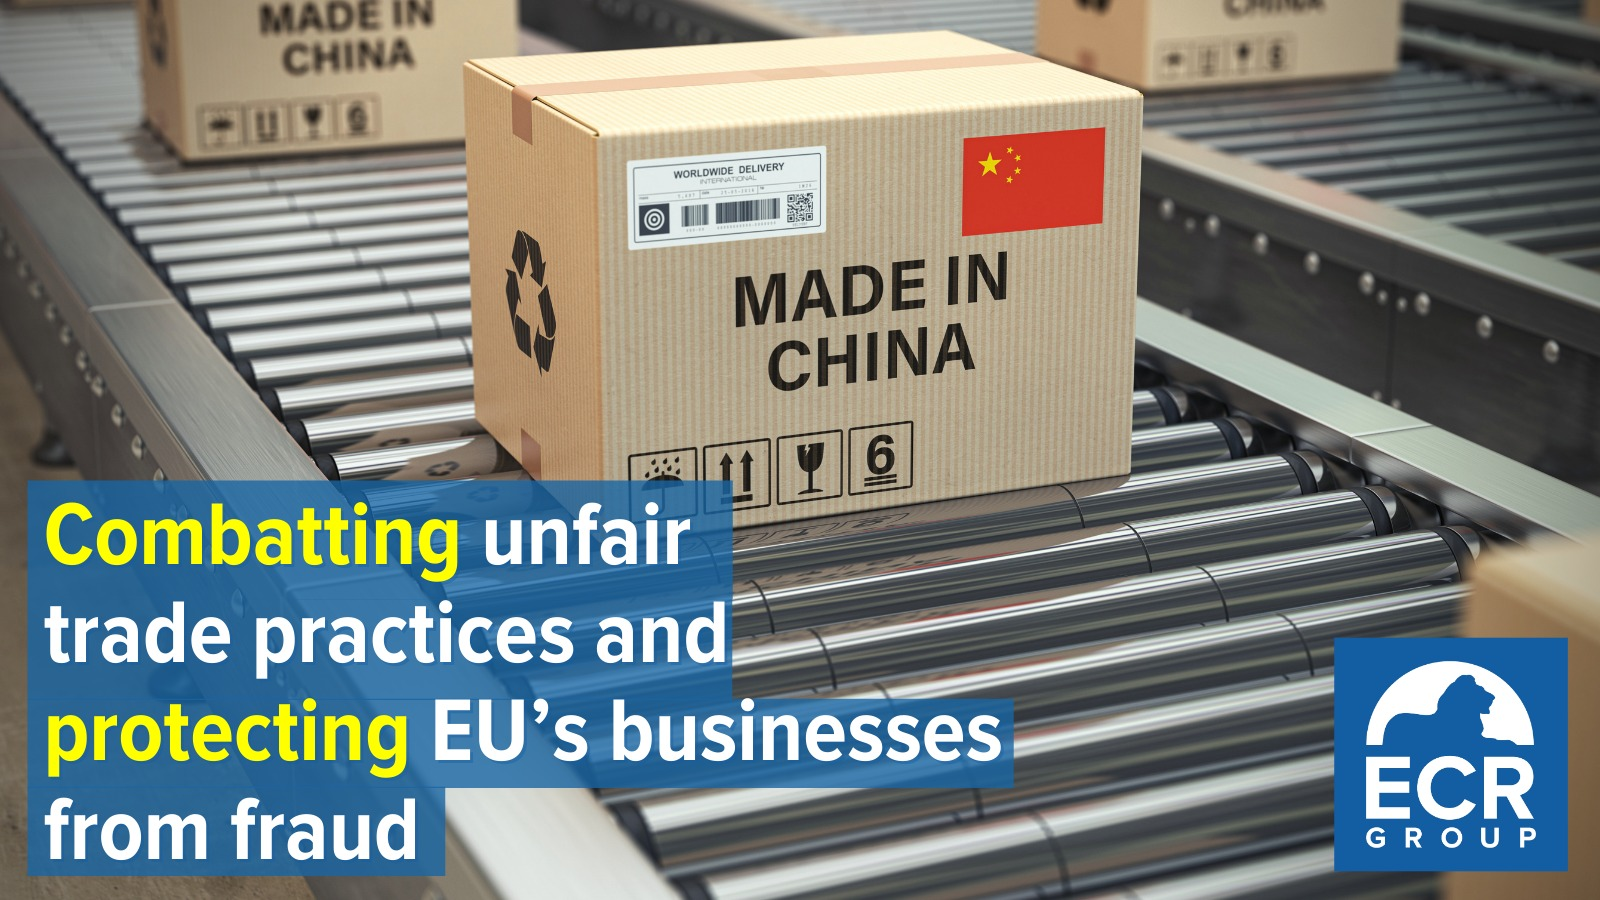 Combatting unfair trade practices and protecting EU's businesses from fraud